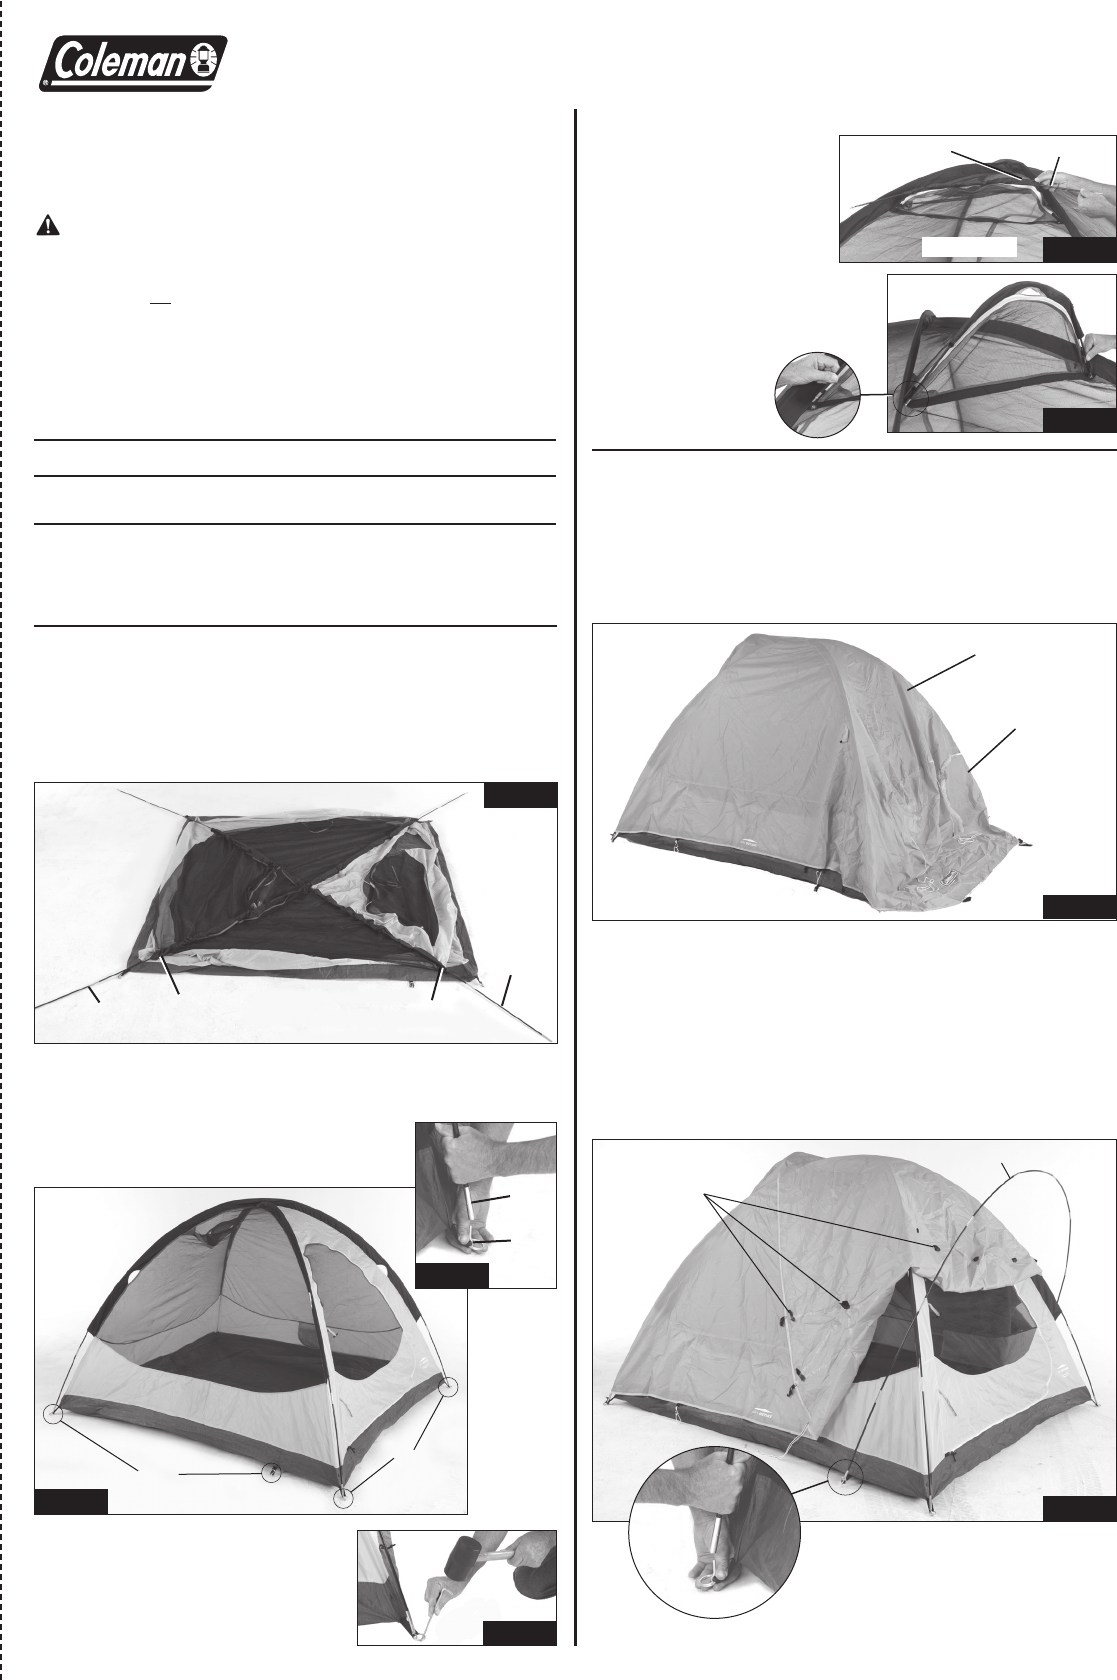 Coleman 2000001590 Tent User Manual  sc 1 st  Fitness Equipment Manuals - ManualsOnline.com & Coleman Tent 2000001590 User Guide | ManualsOnline.com